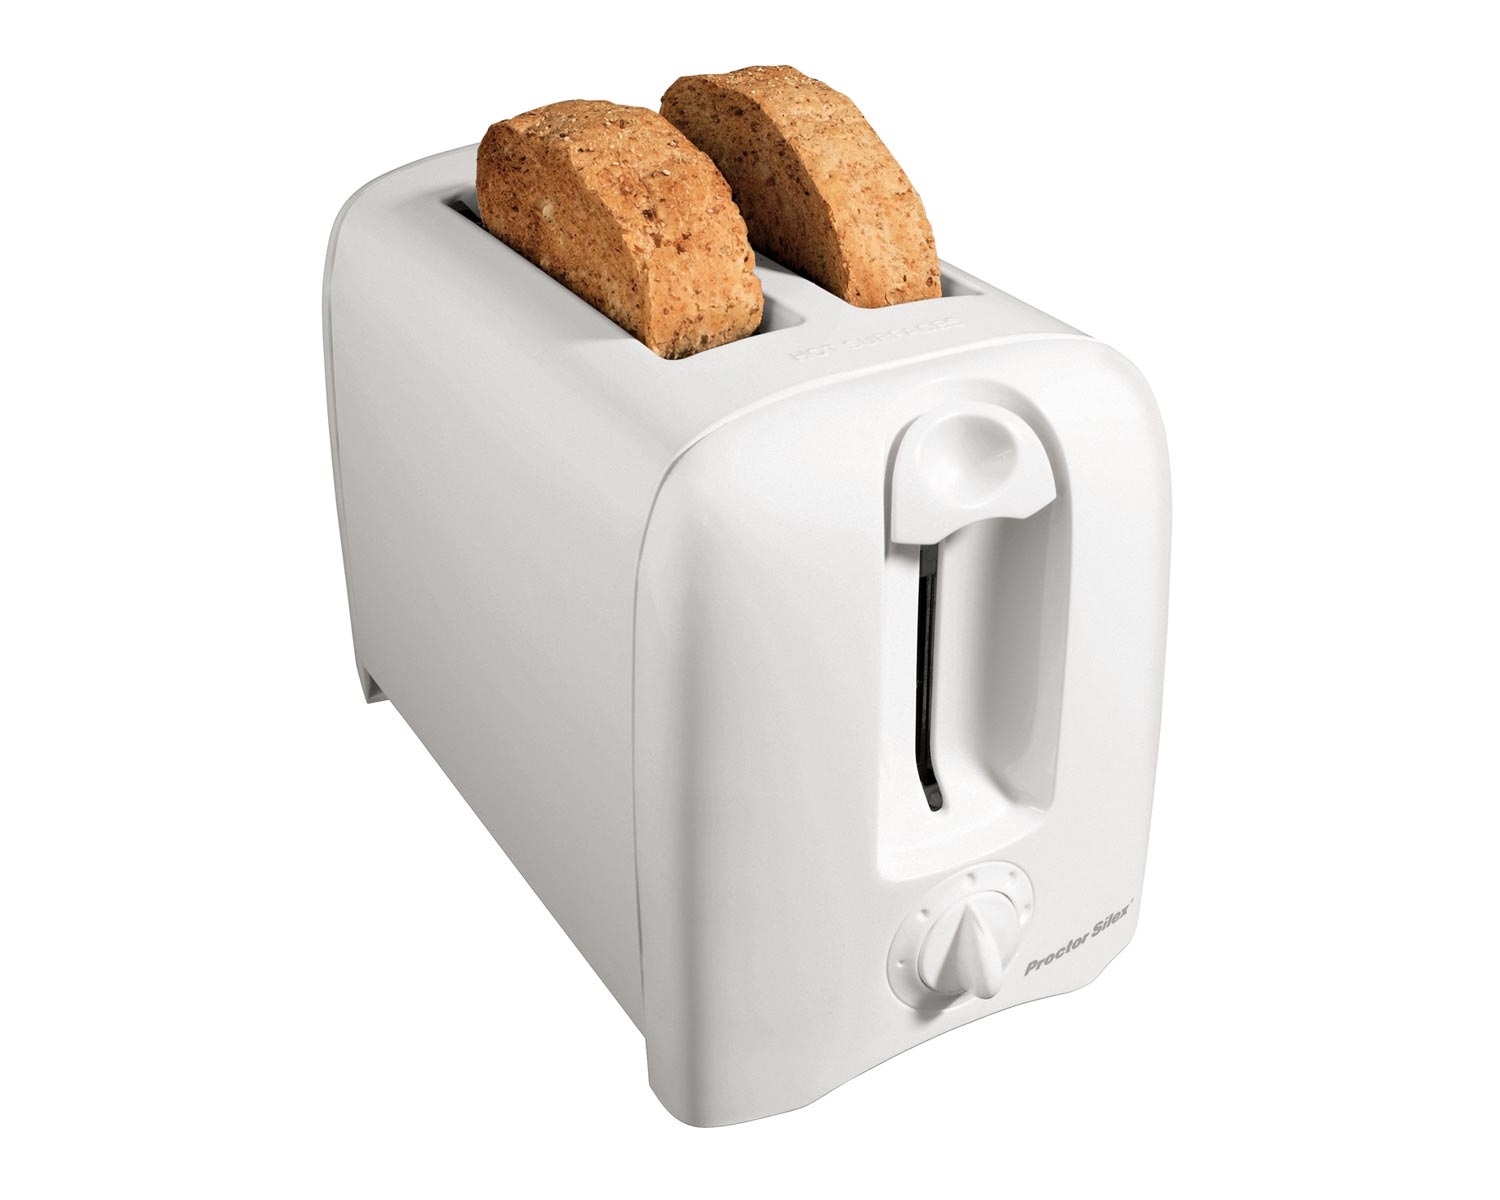 2-Slice Cool-Wall Toaster (white)